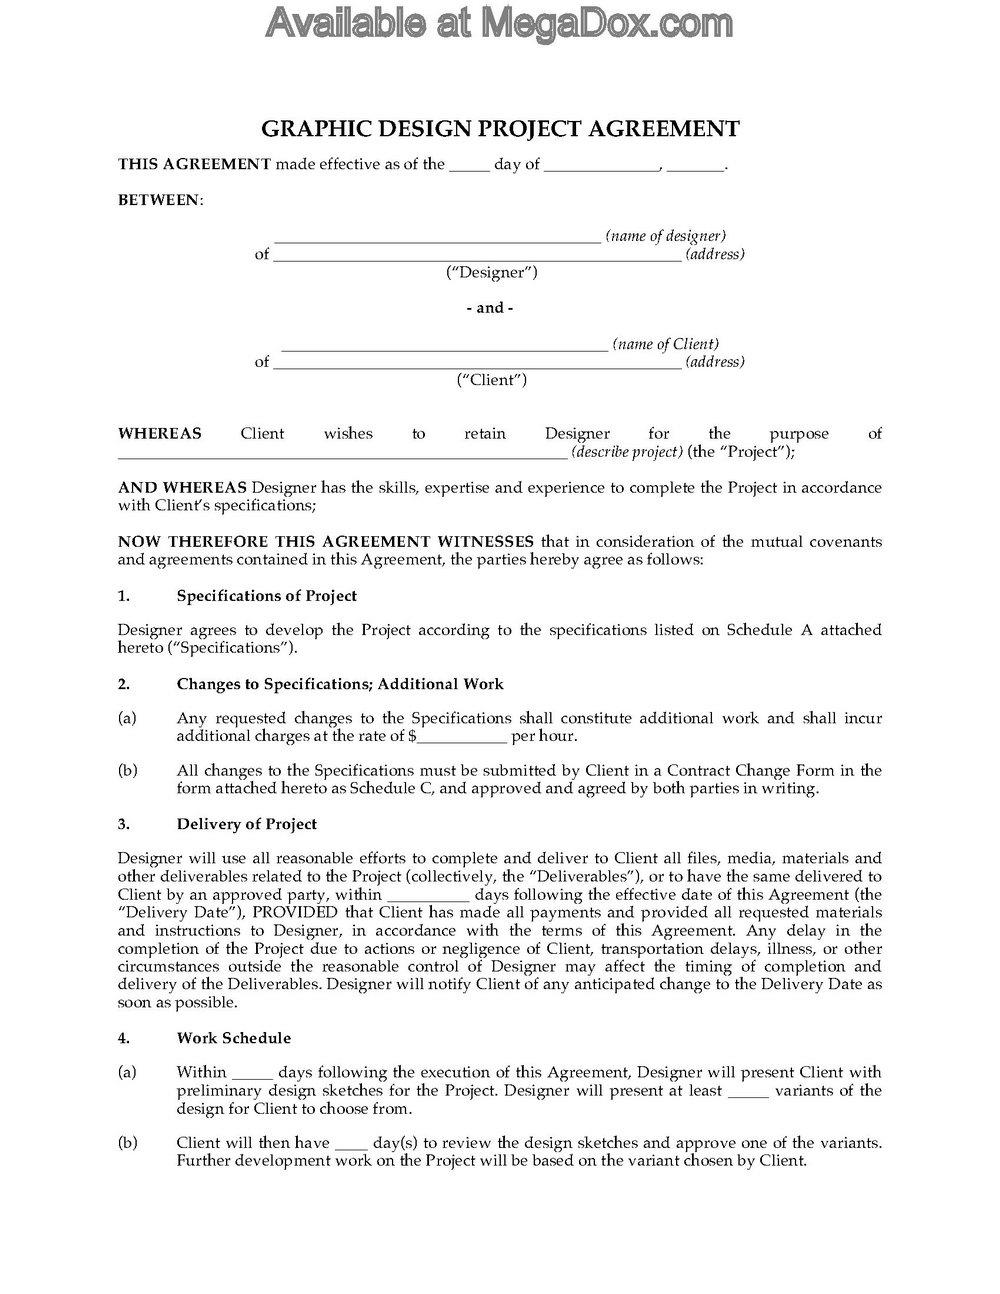 Graphic Design Contracts And Forms